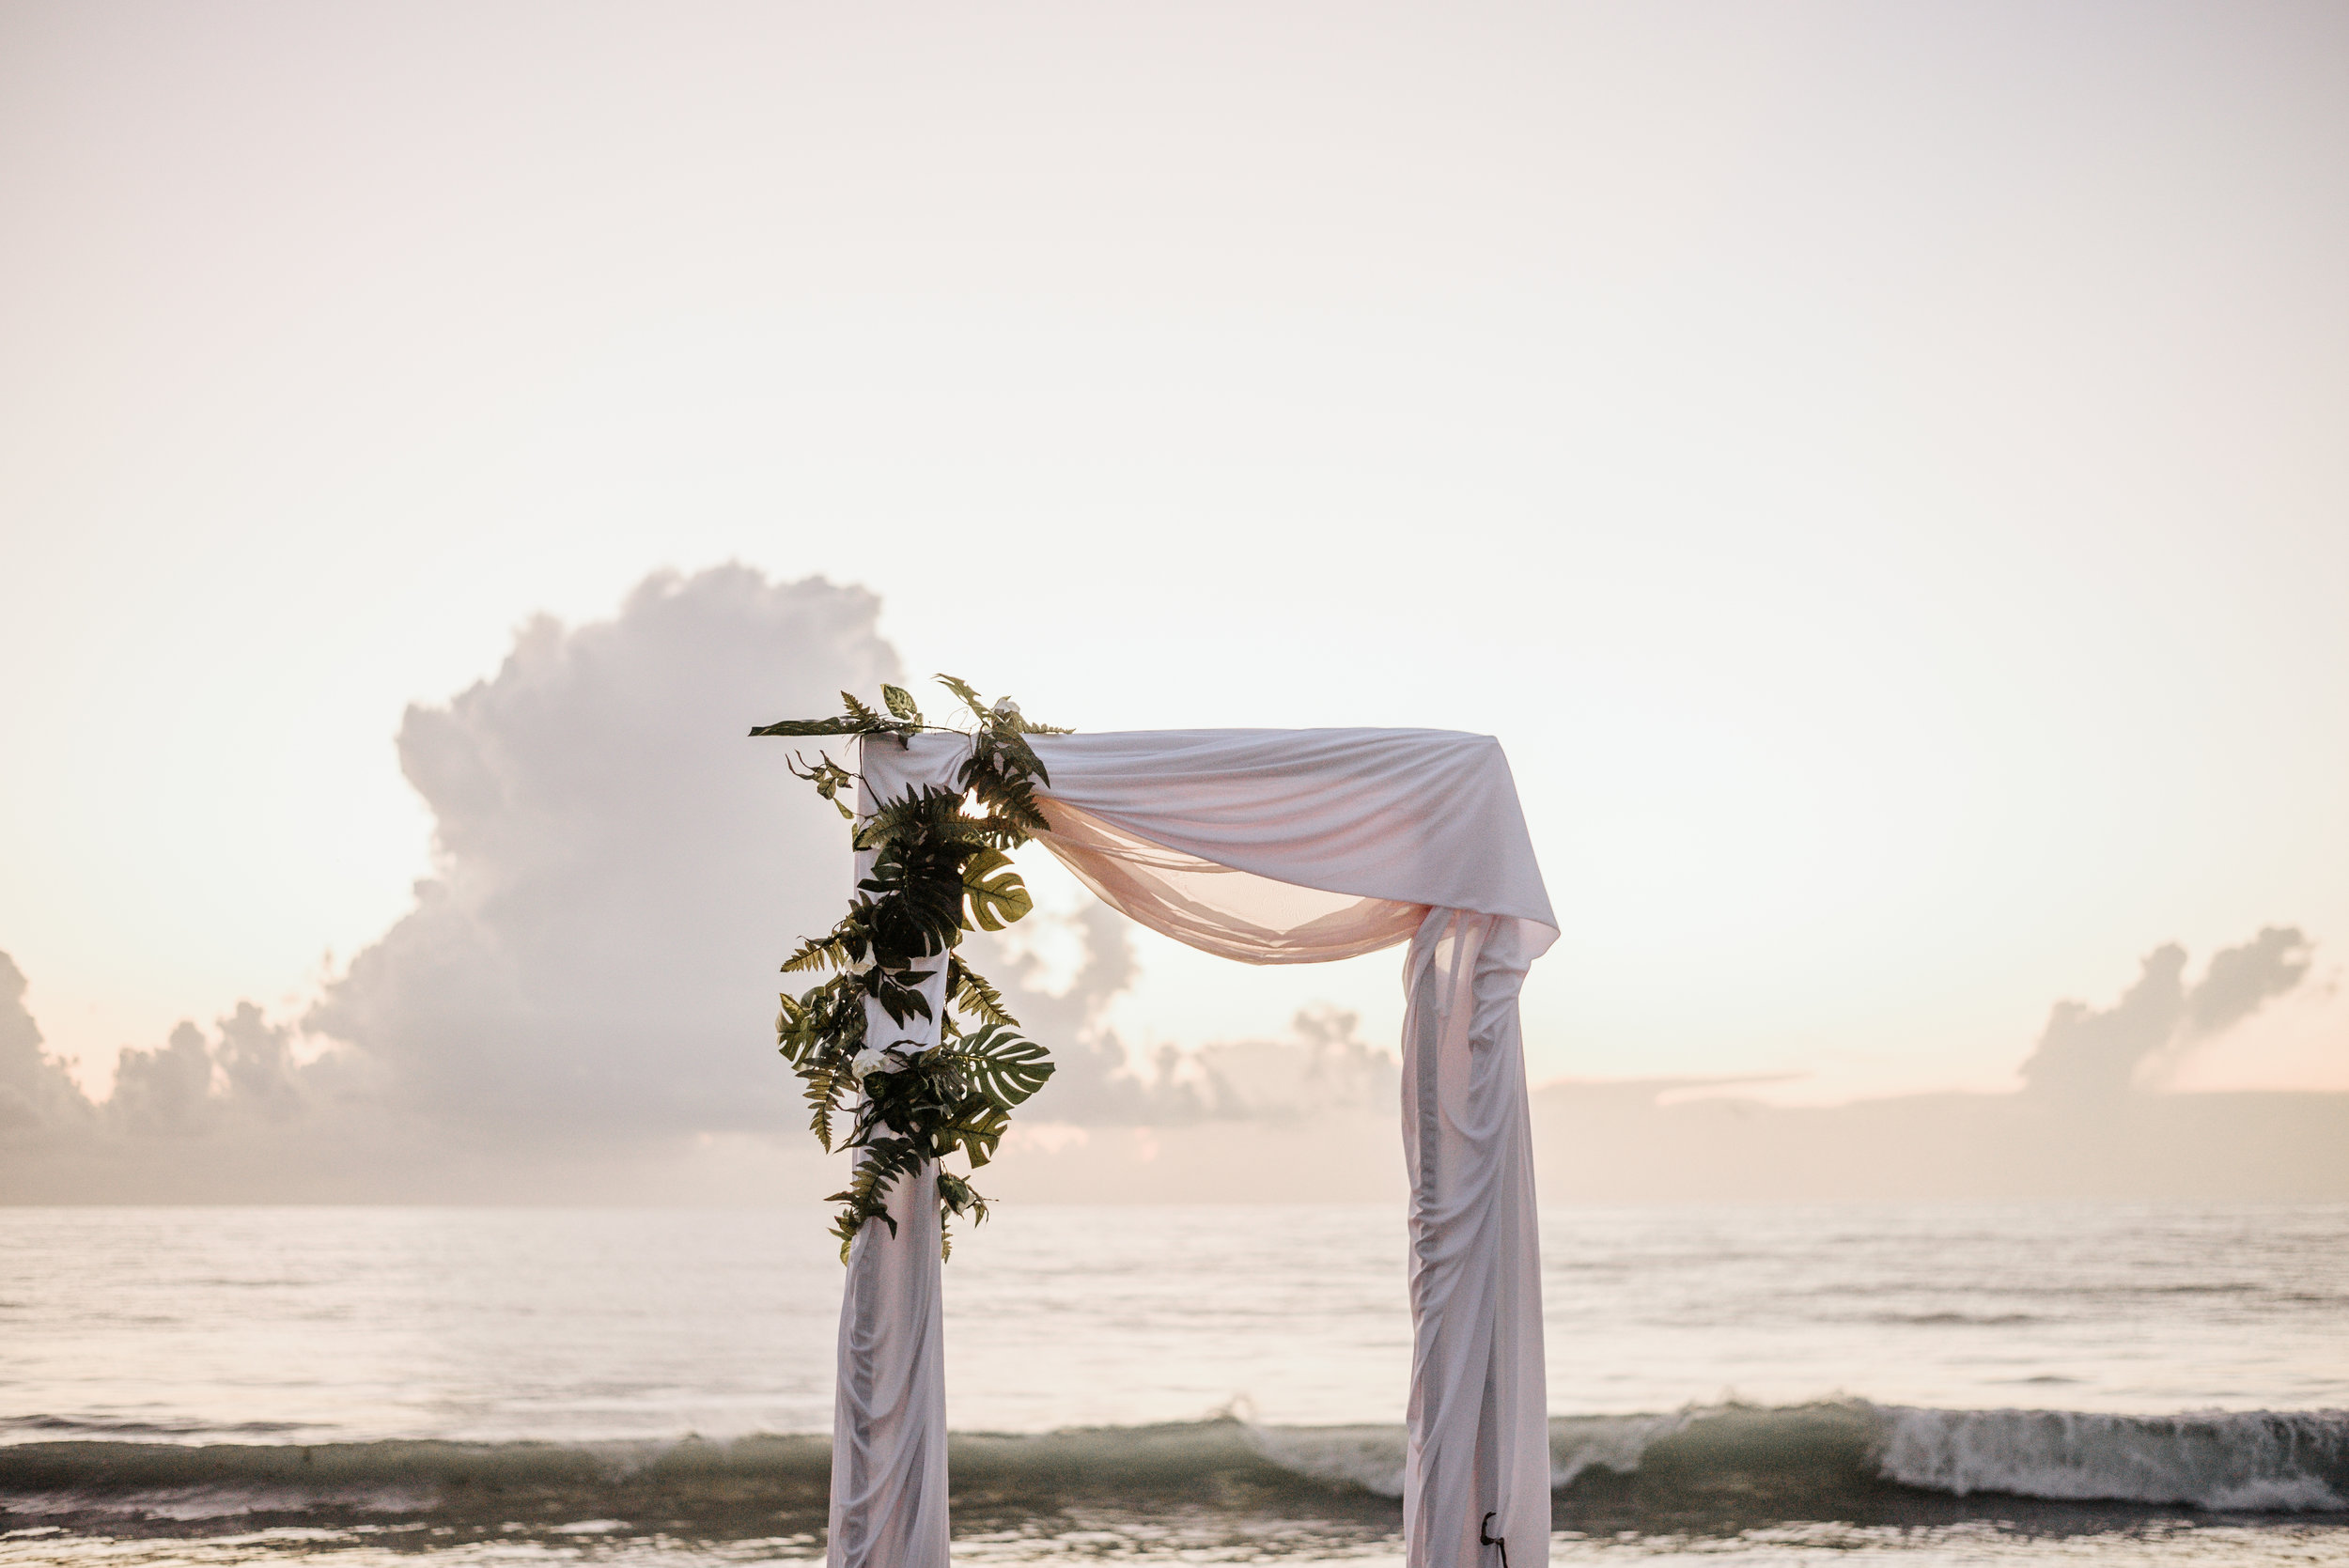 Crystal-Nick-Wedding-Vero-Beach-Florida-Treasure-Shores-Beach-Photography-by-V-2610.jpg